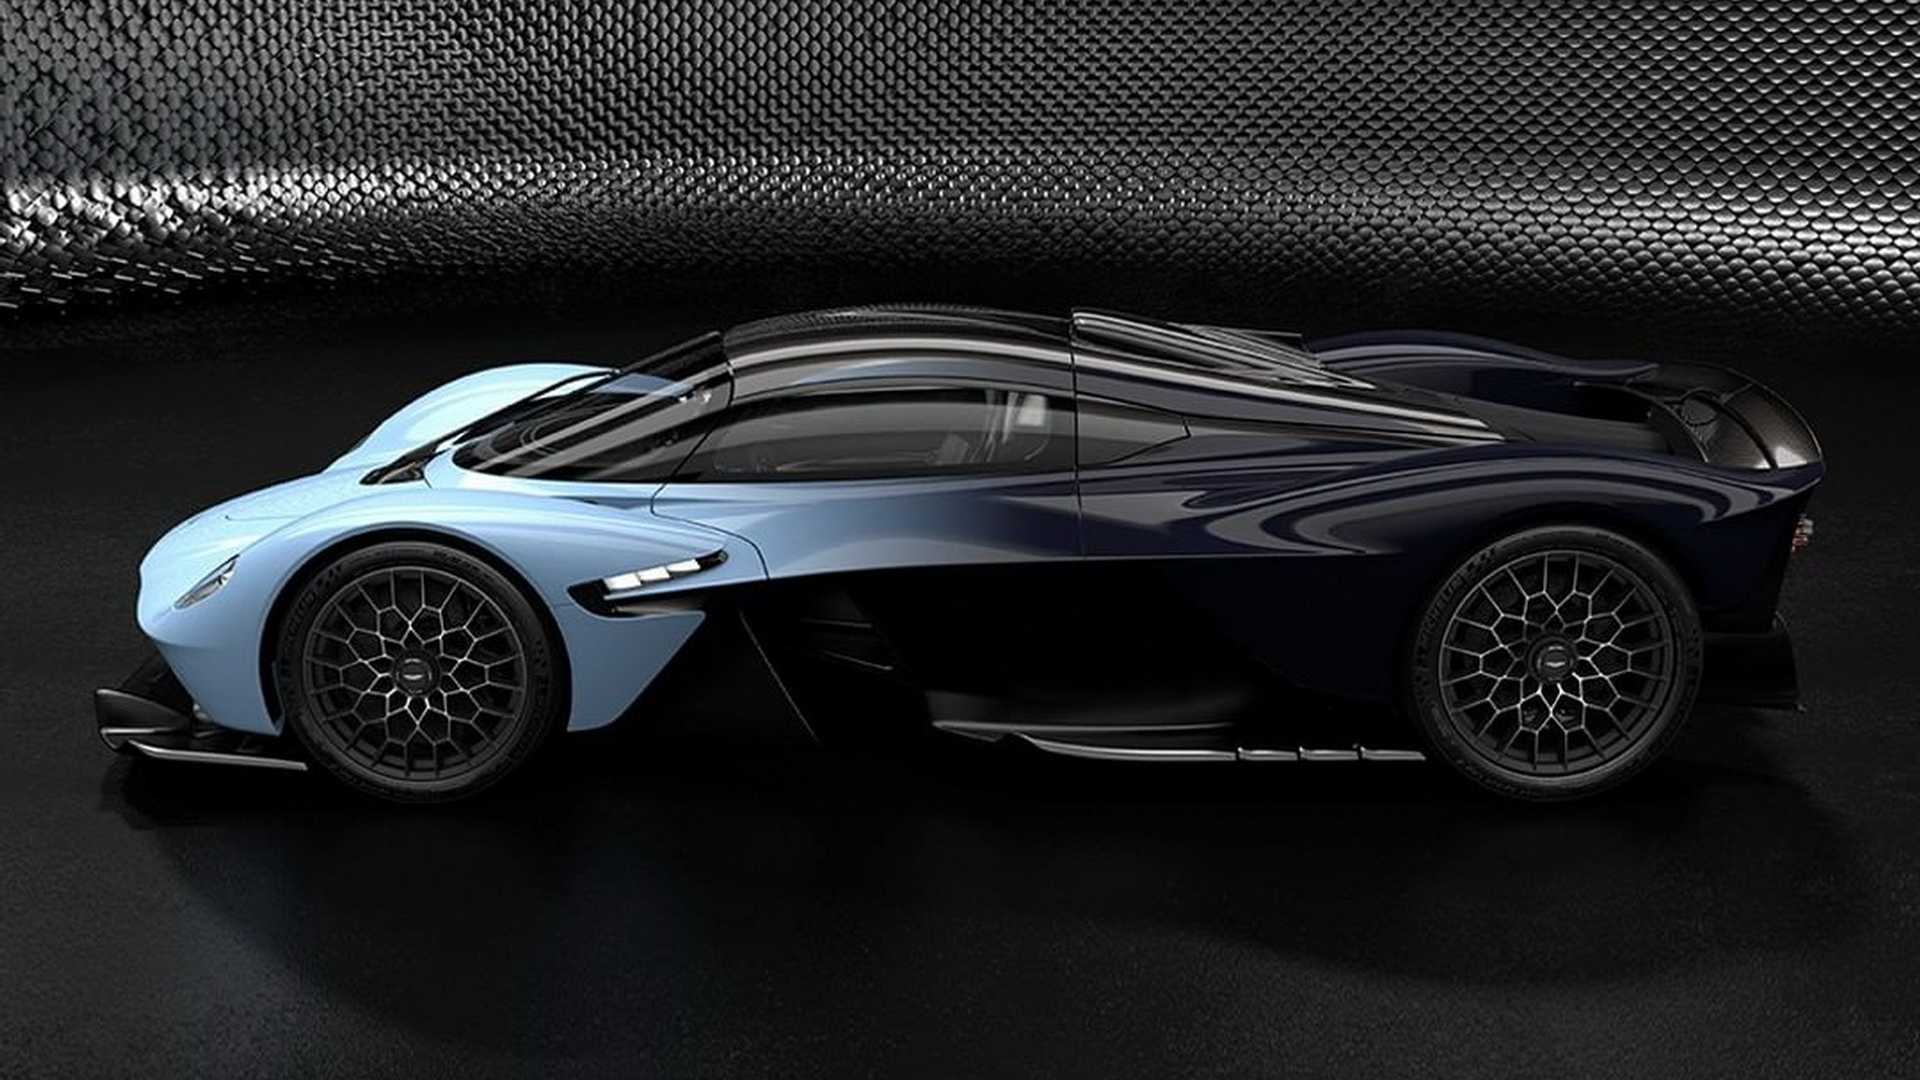 aston martin valkyrie reviews, specs, prices, photos and videos